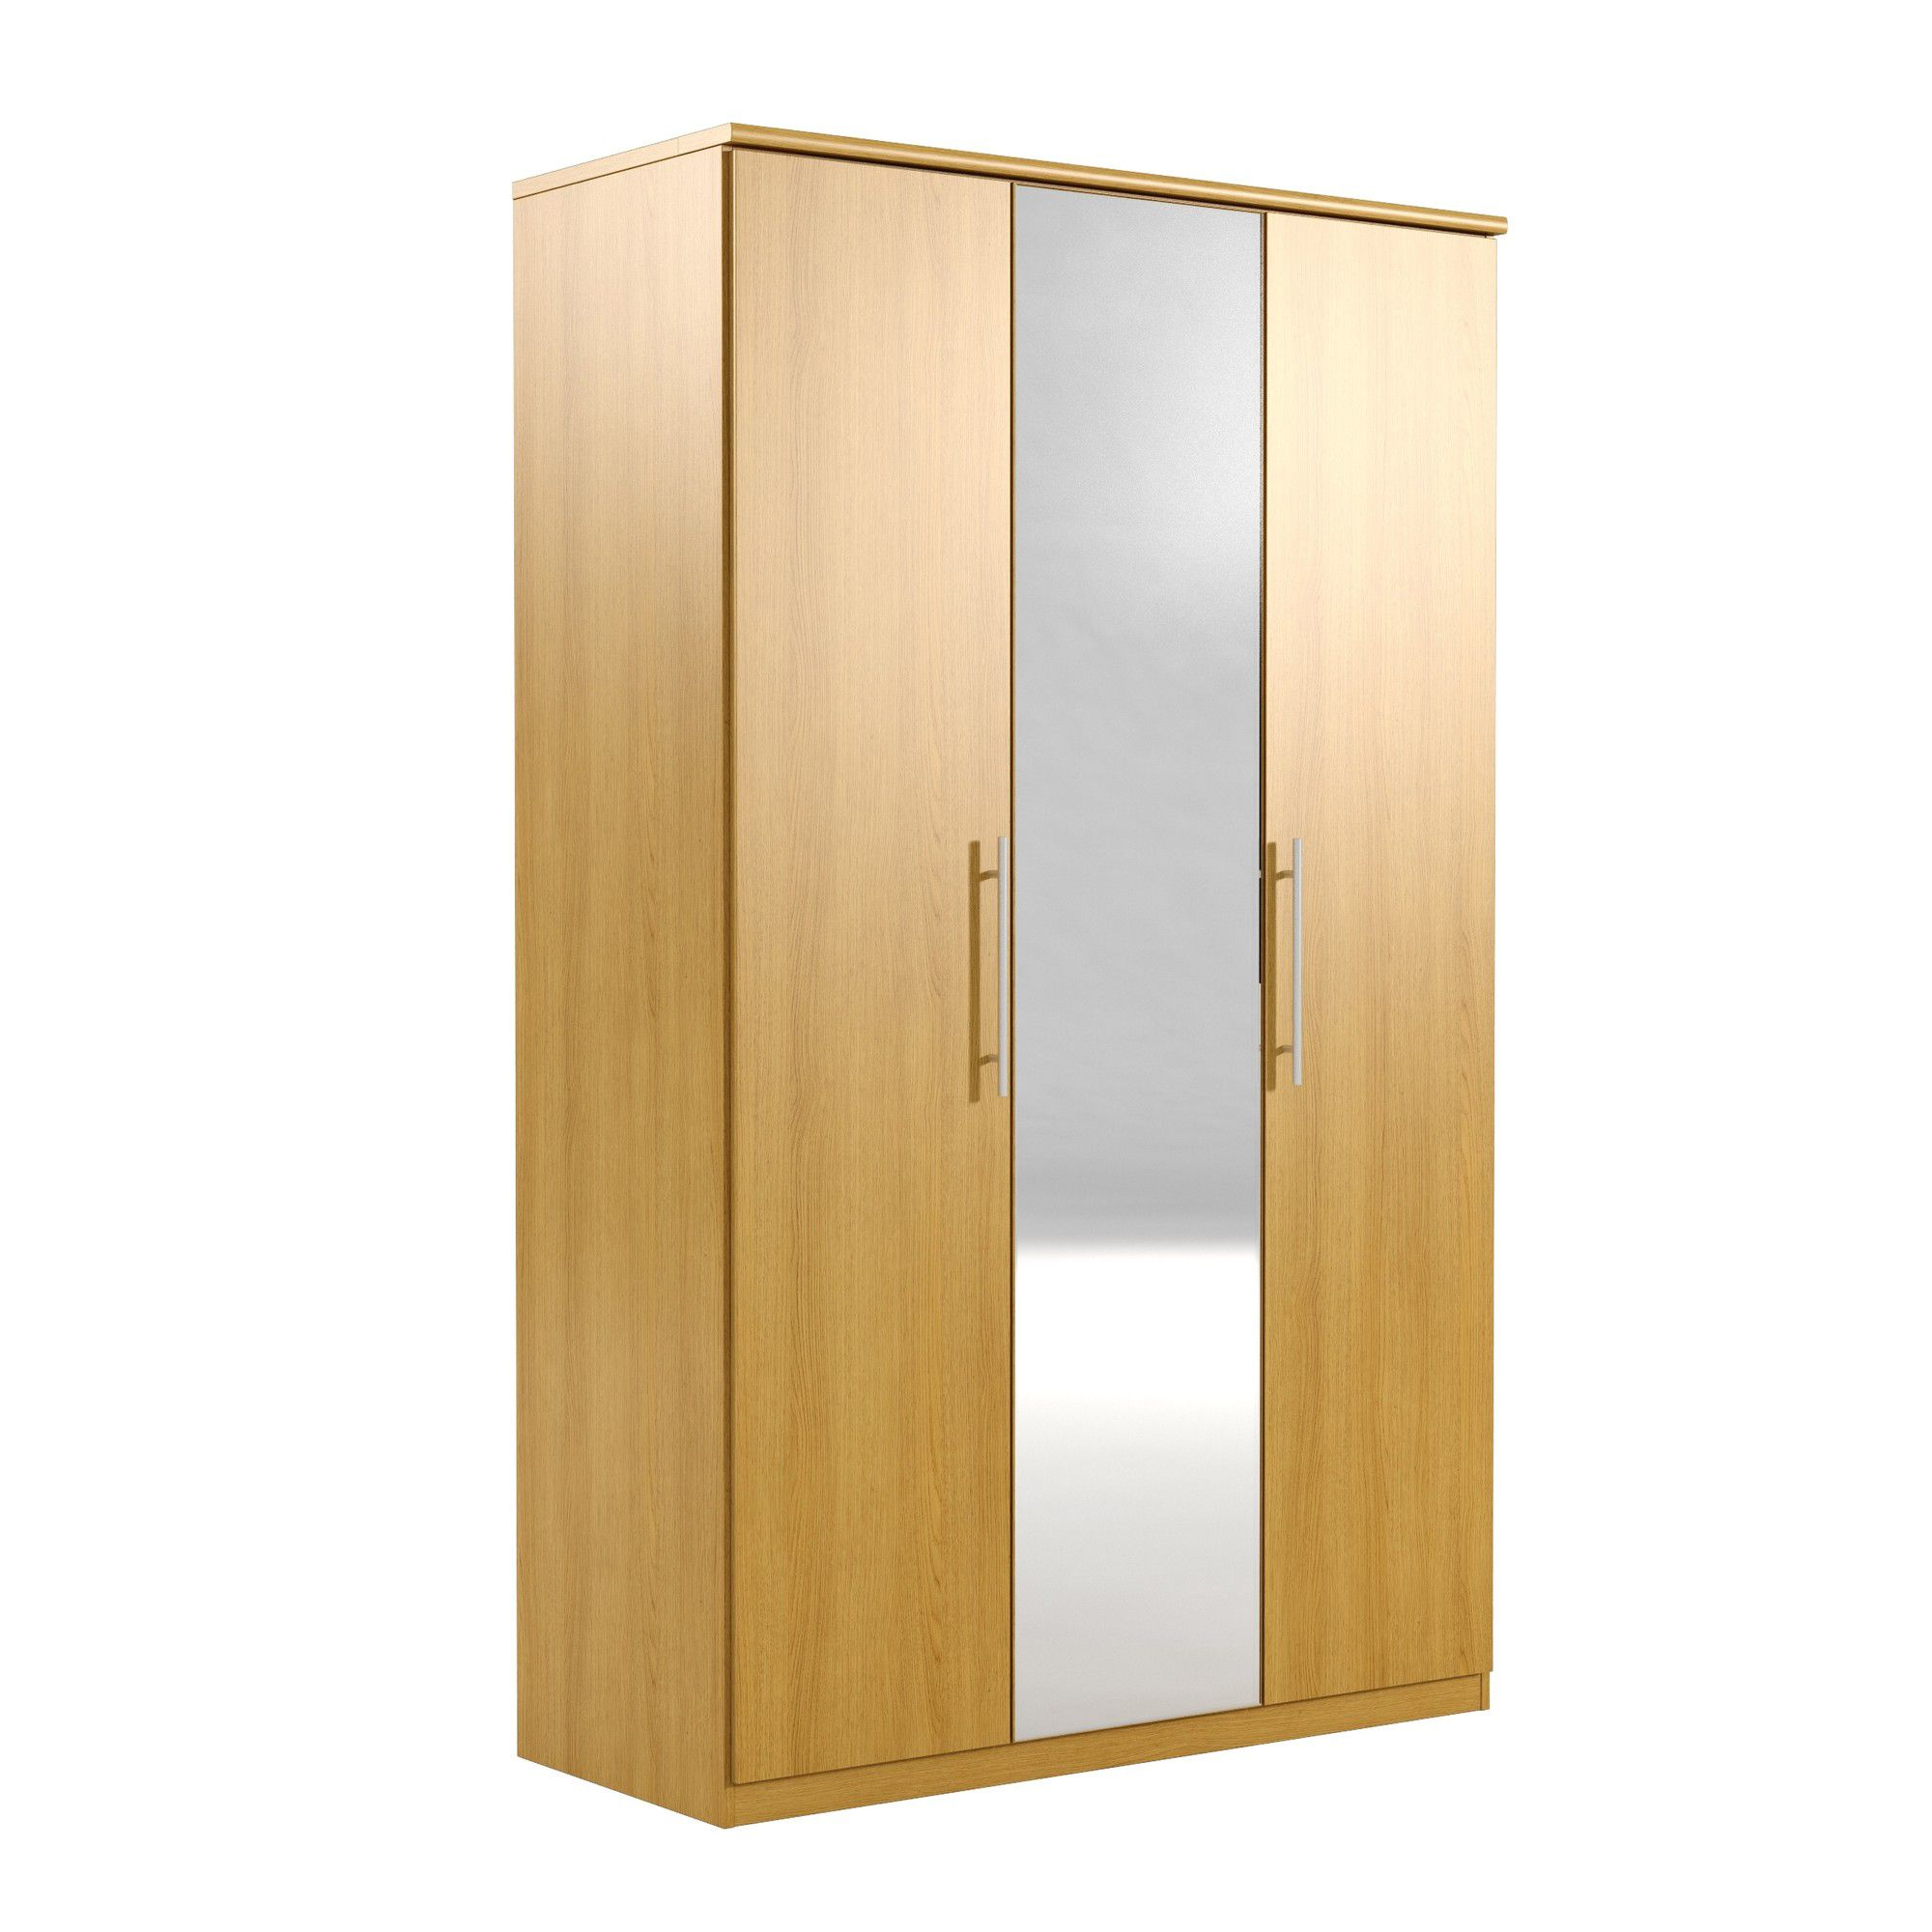 Urbane Designs Prague 3 Door Wardrobe - Oak at Tesco Direct